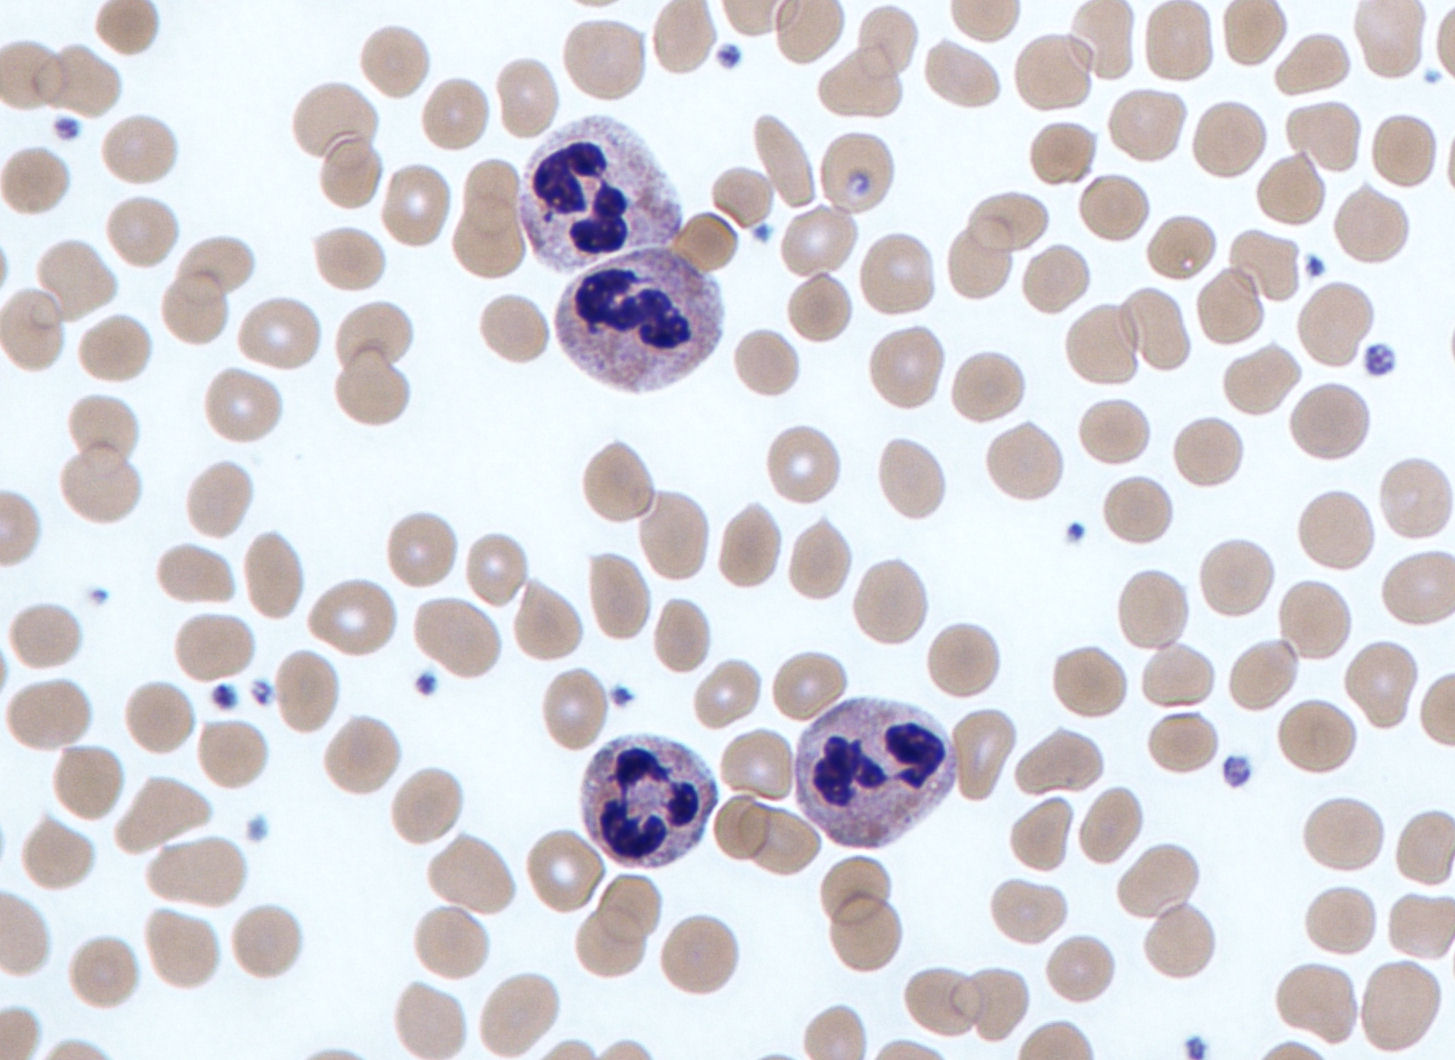 What do elevated neutrophils in the blood say